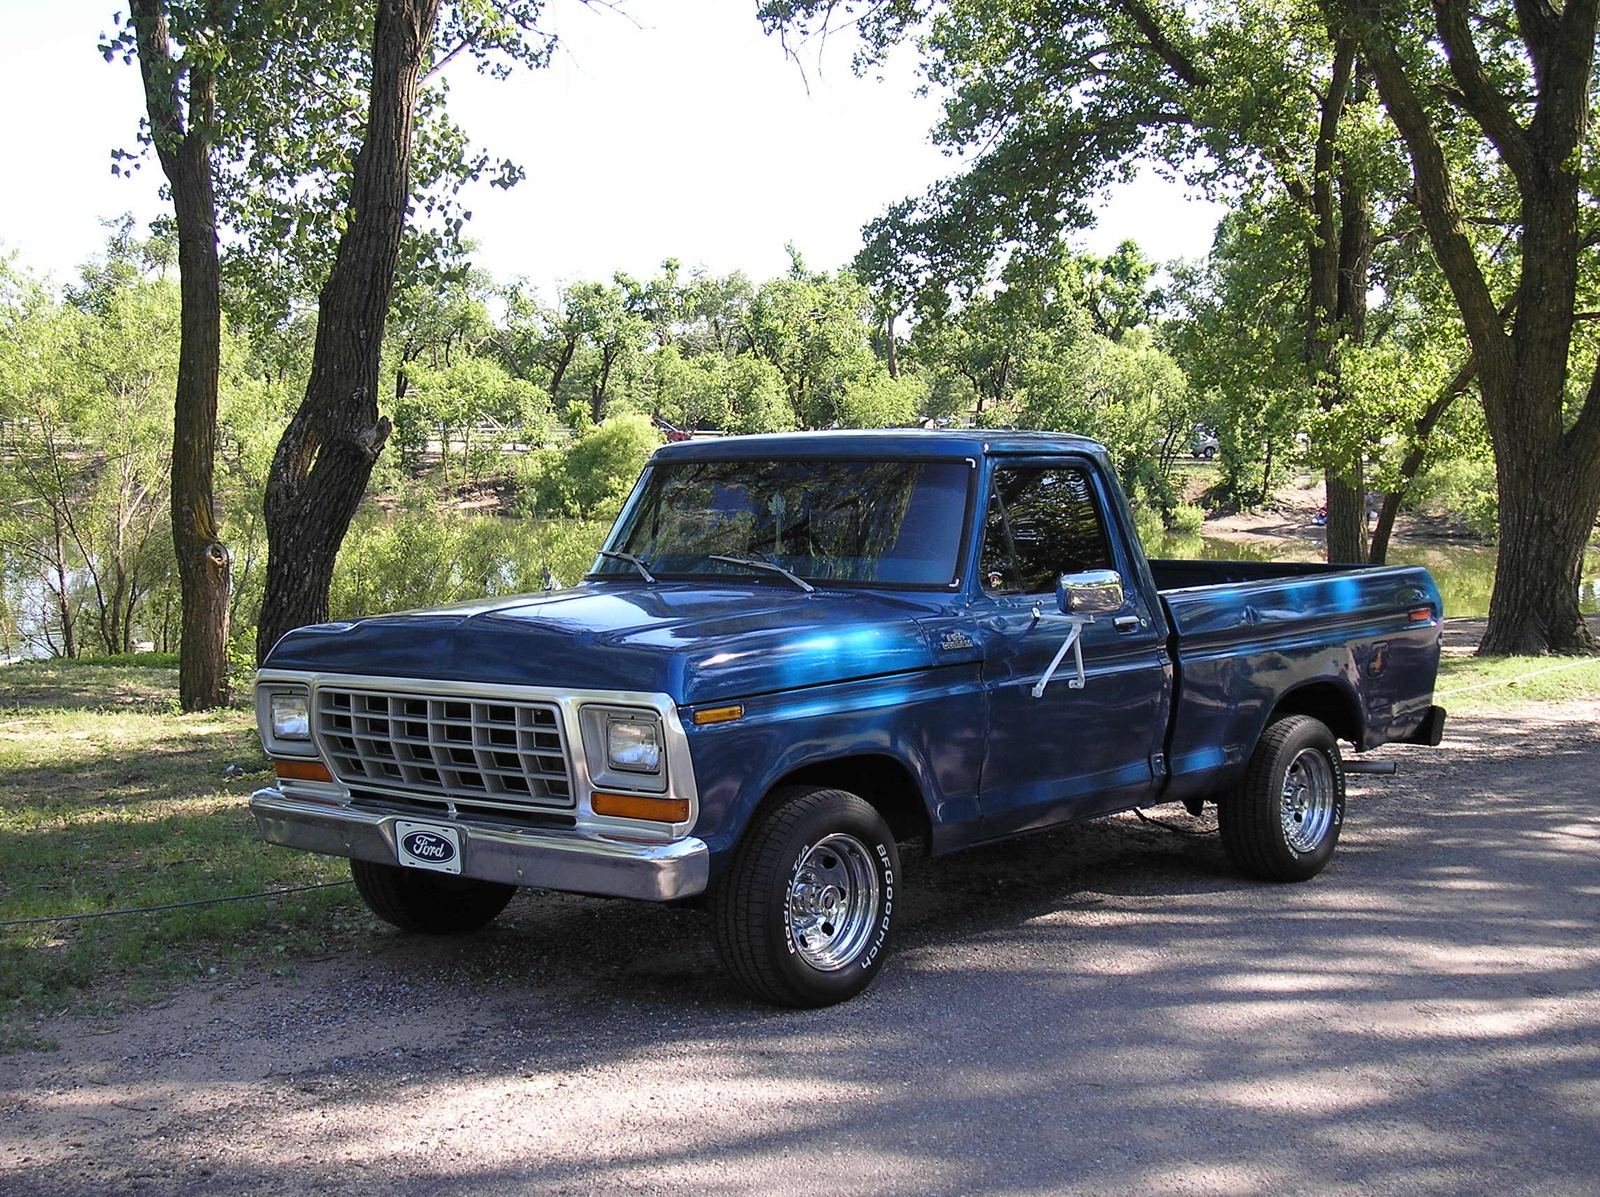 Ford f-250 1979 photo - 2